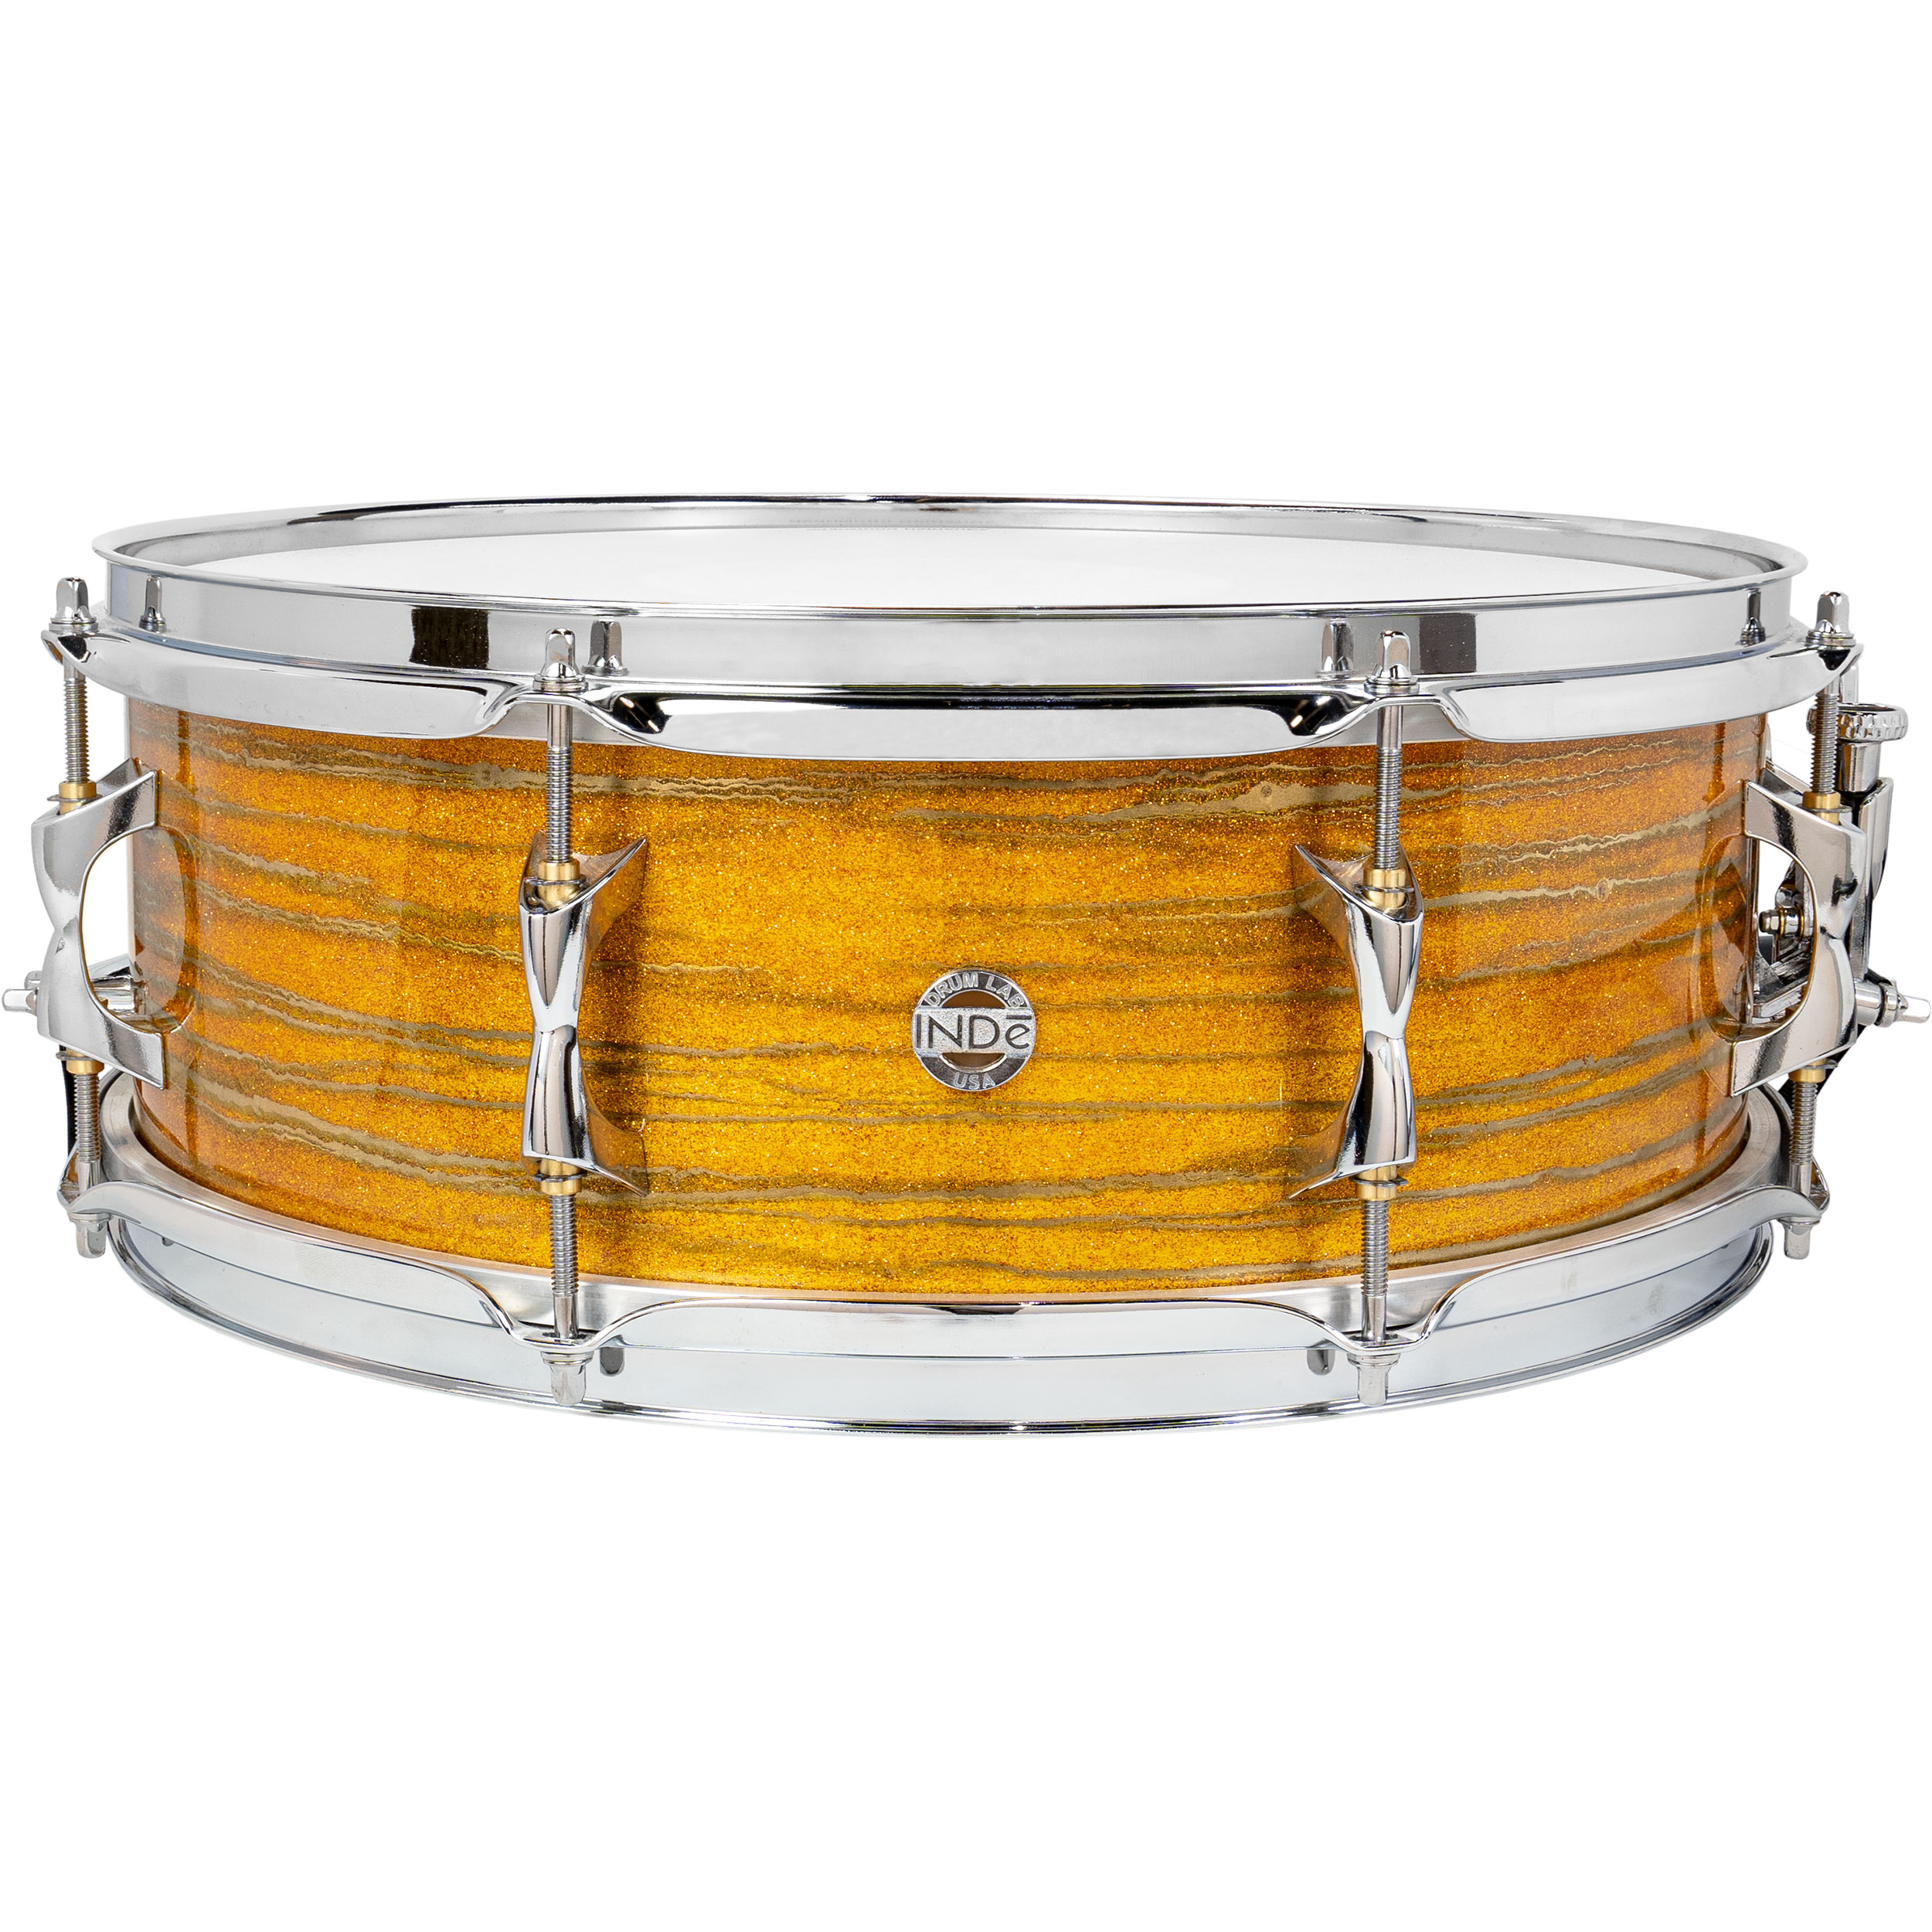 "Inde 5.5"" x 15"" ResoArmor Snare Drum in Yellow Sparkle with Gold Swirl (Demo)"